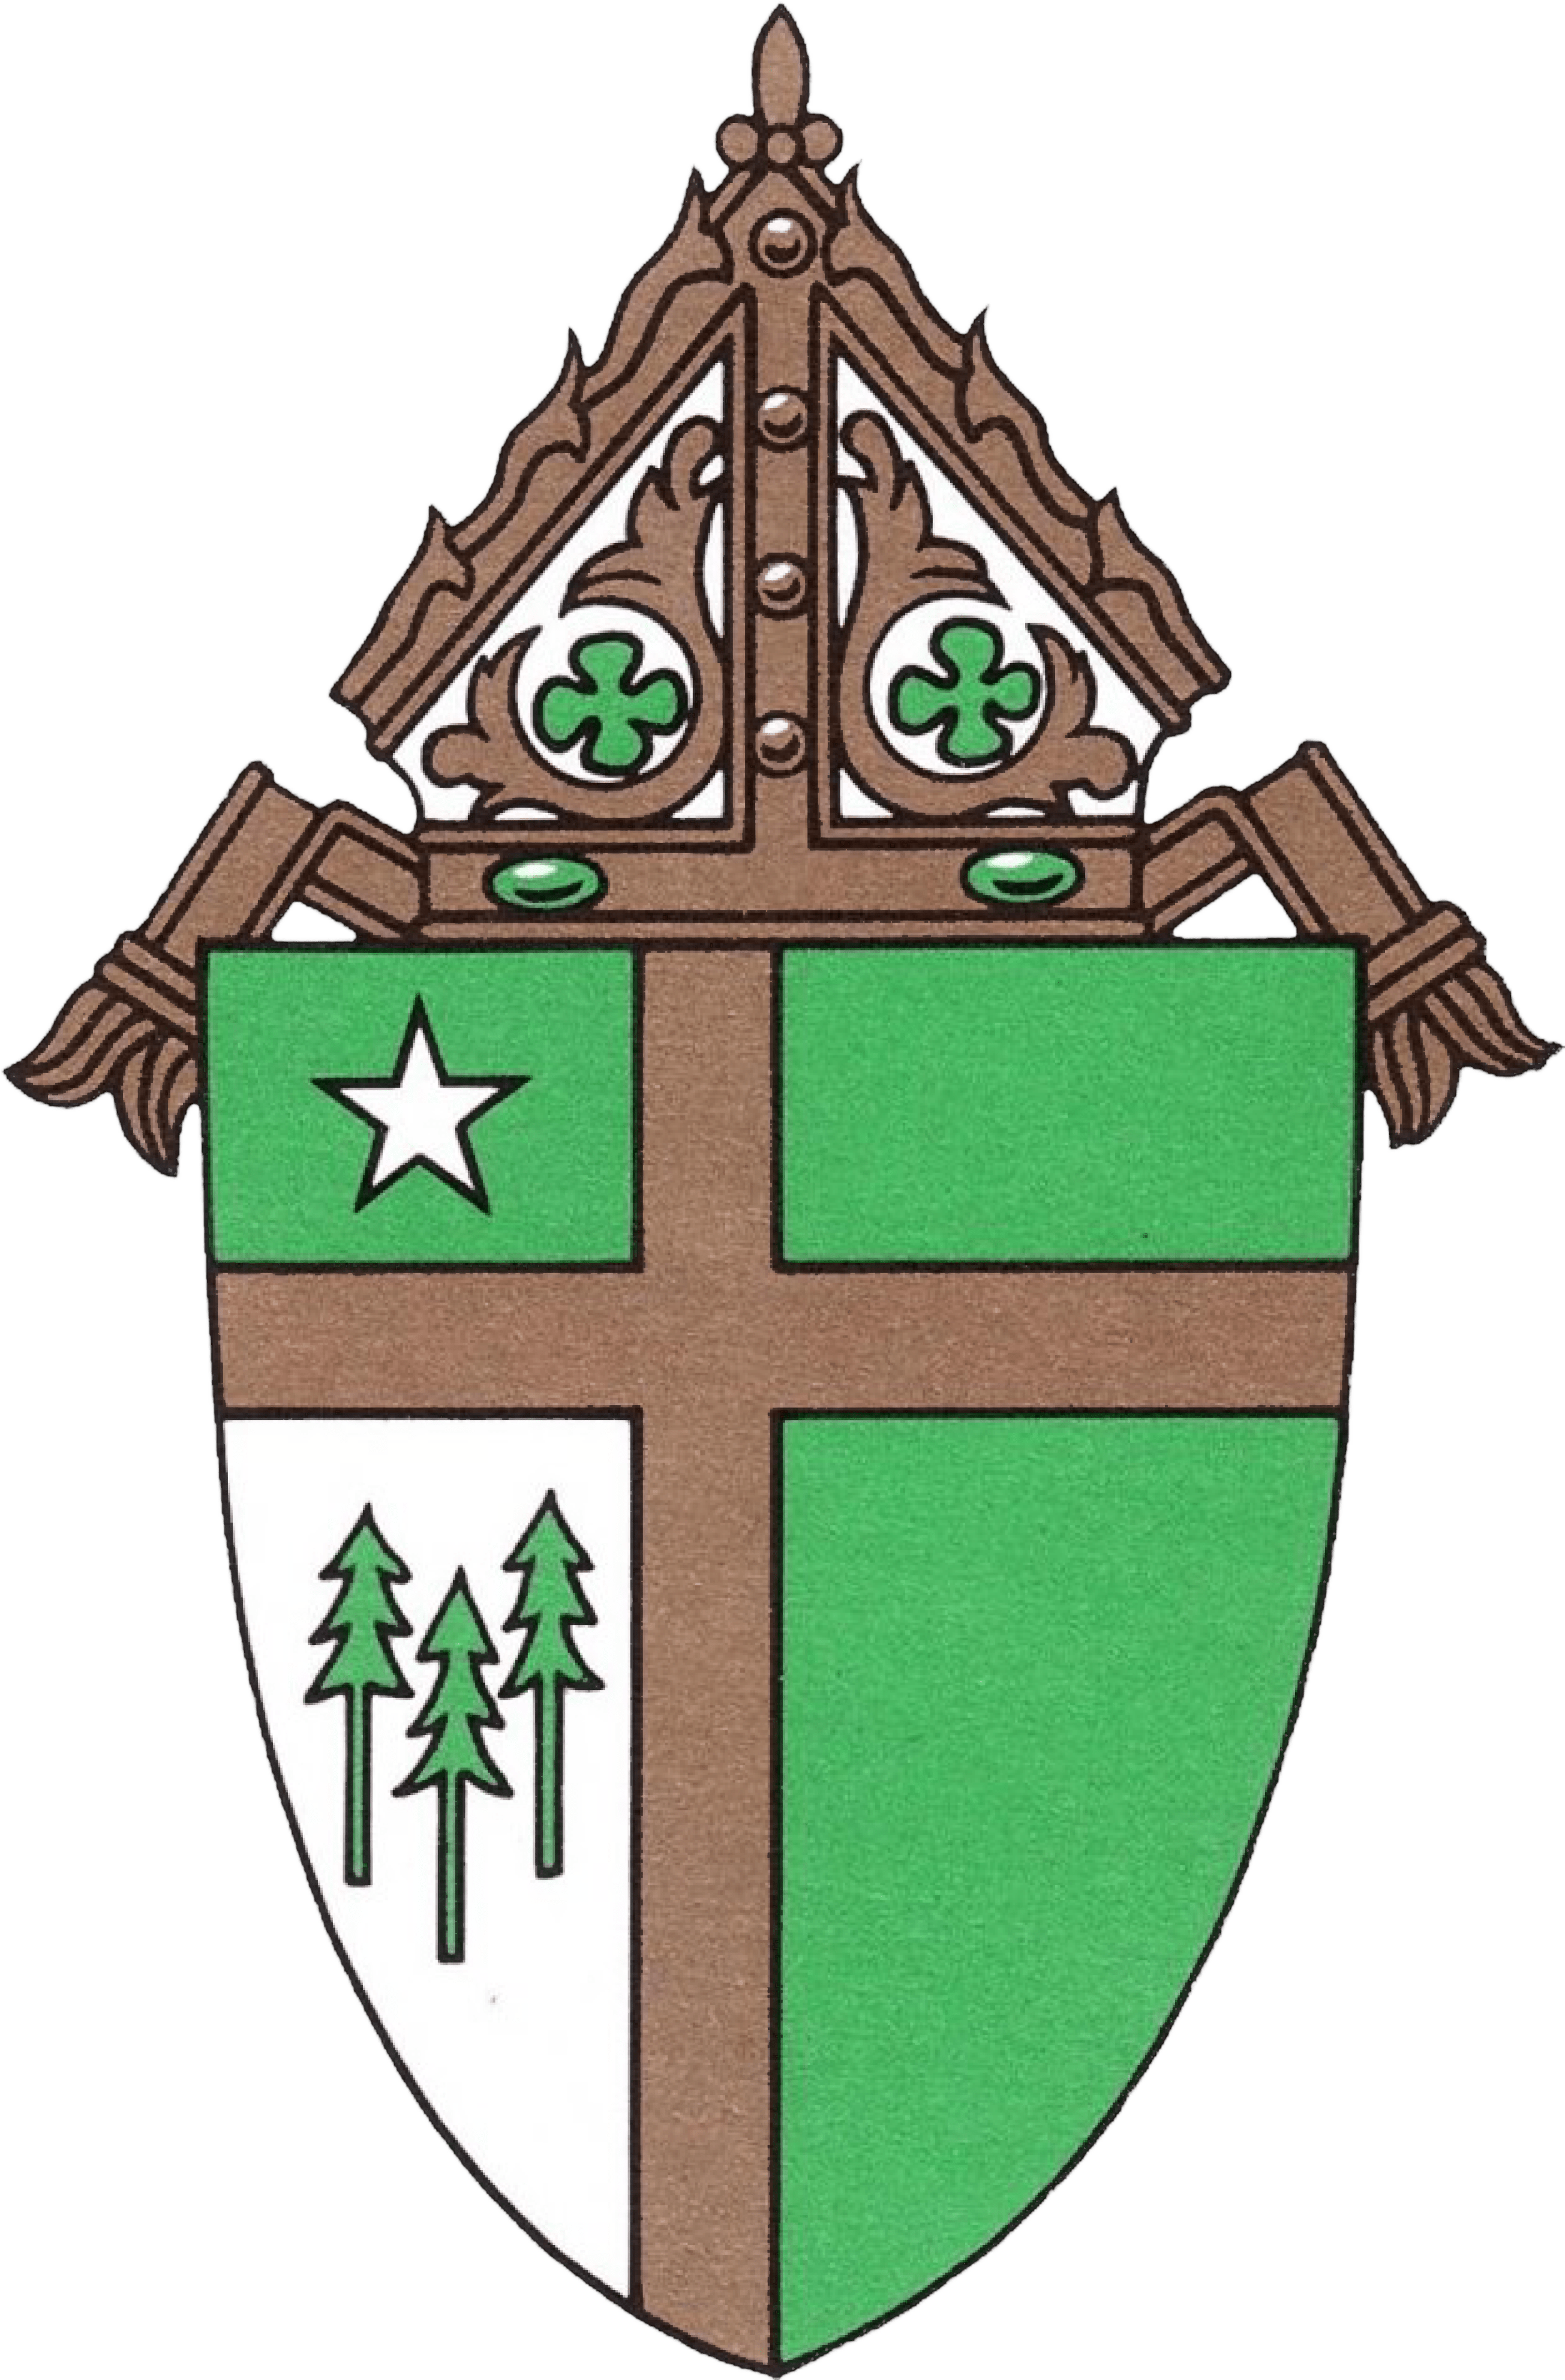 Bishop issues decree for. Environment clipart safe environment